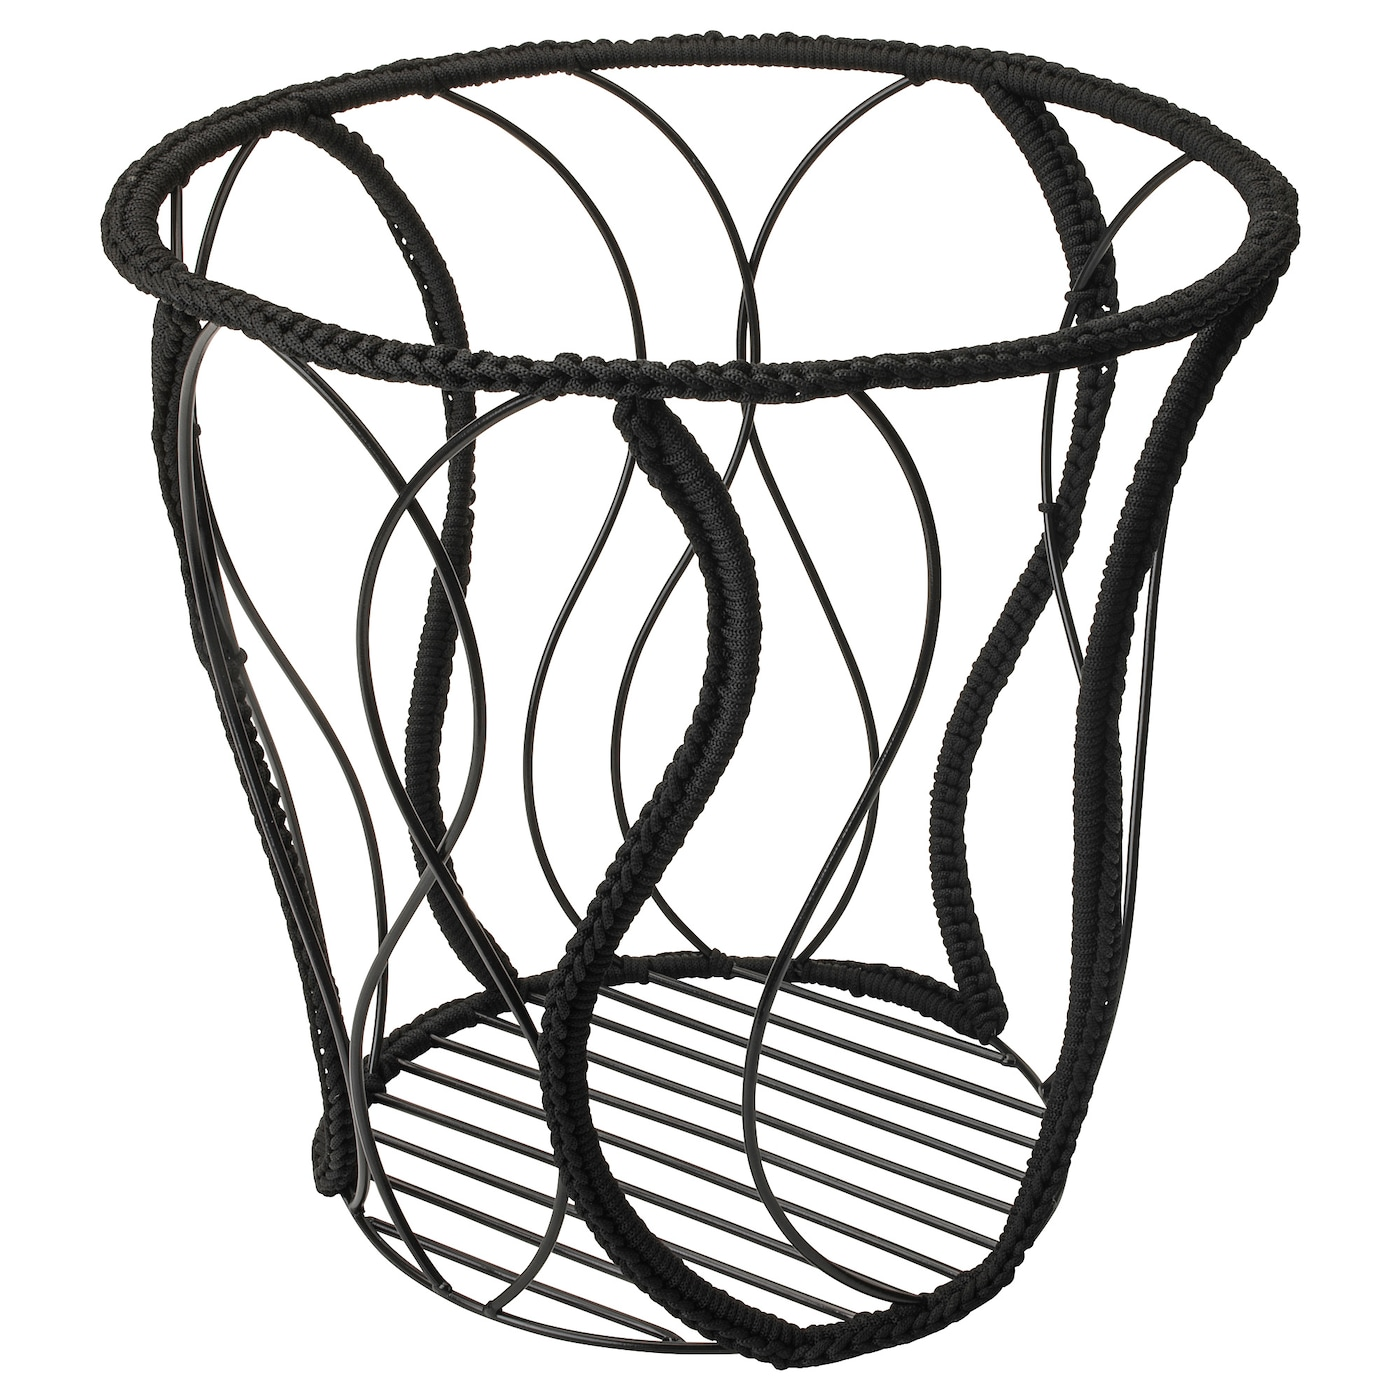 IKEA ÖVERALLT basket Keeps small items like belts, scarves and ties in place.